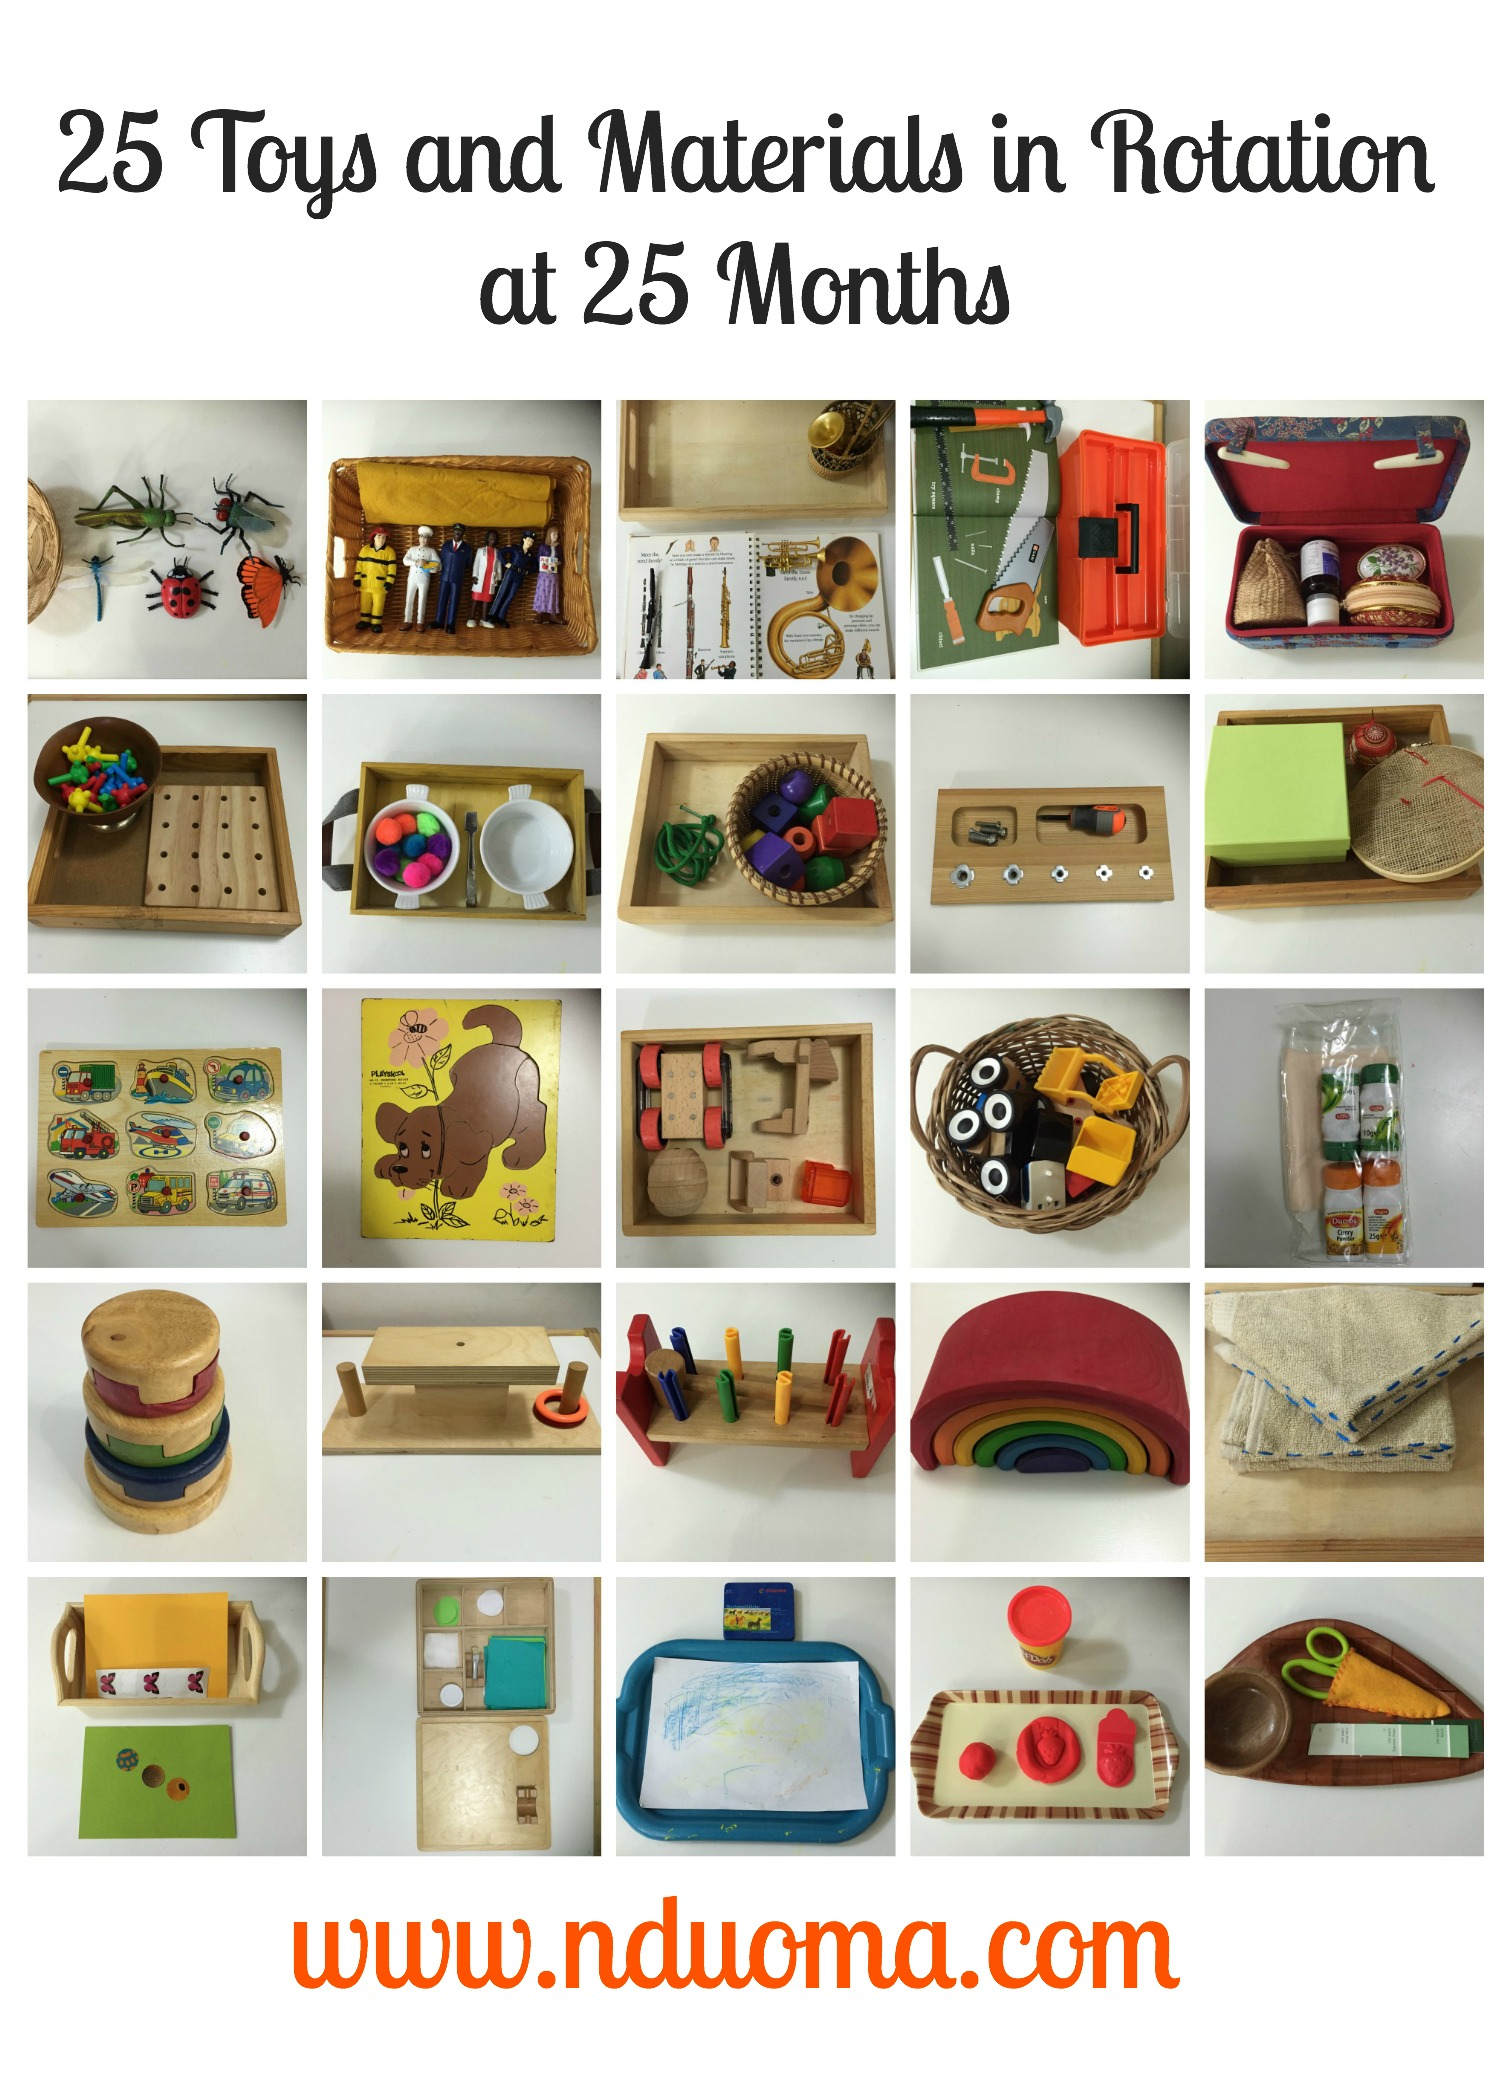 25 Toys and Materials.jpg